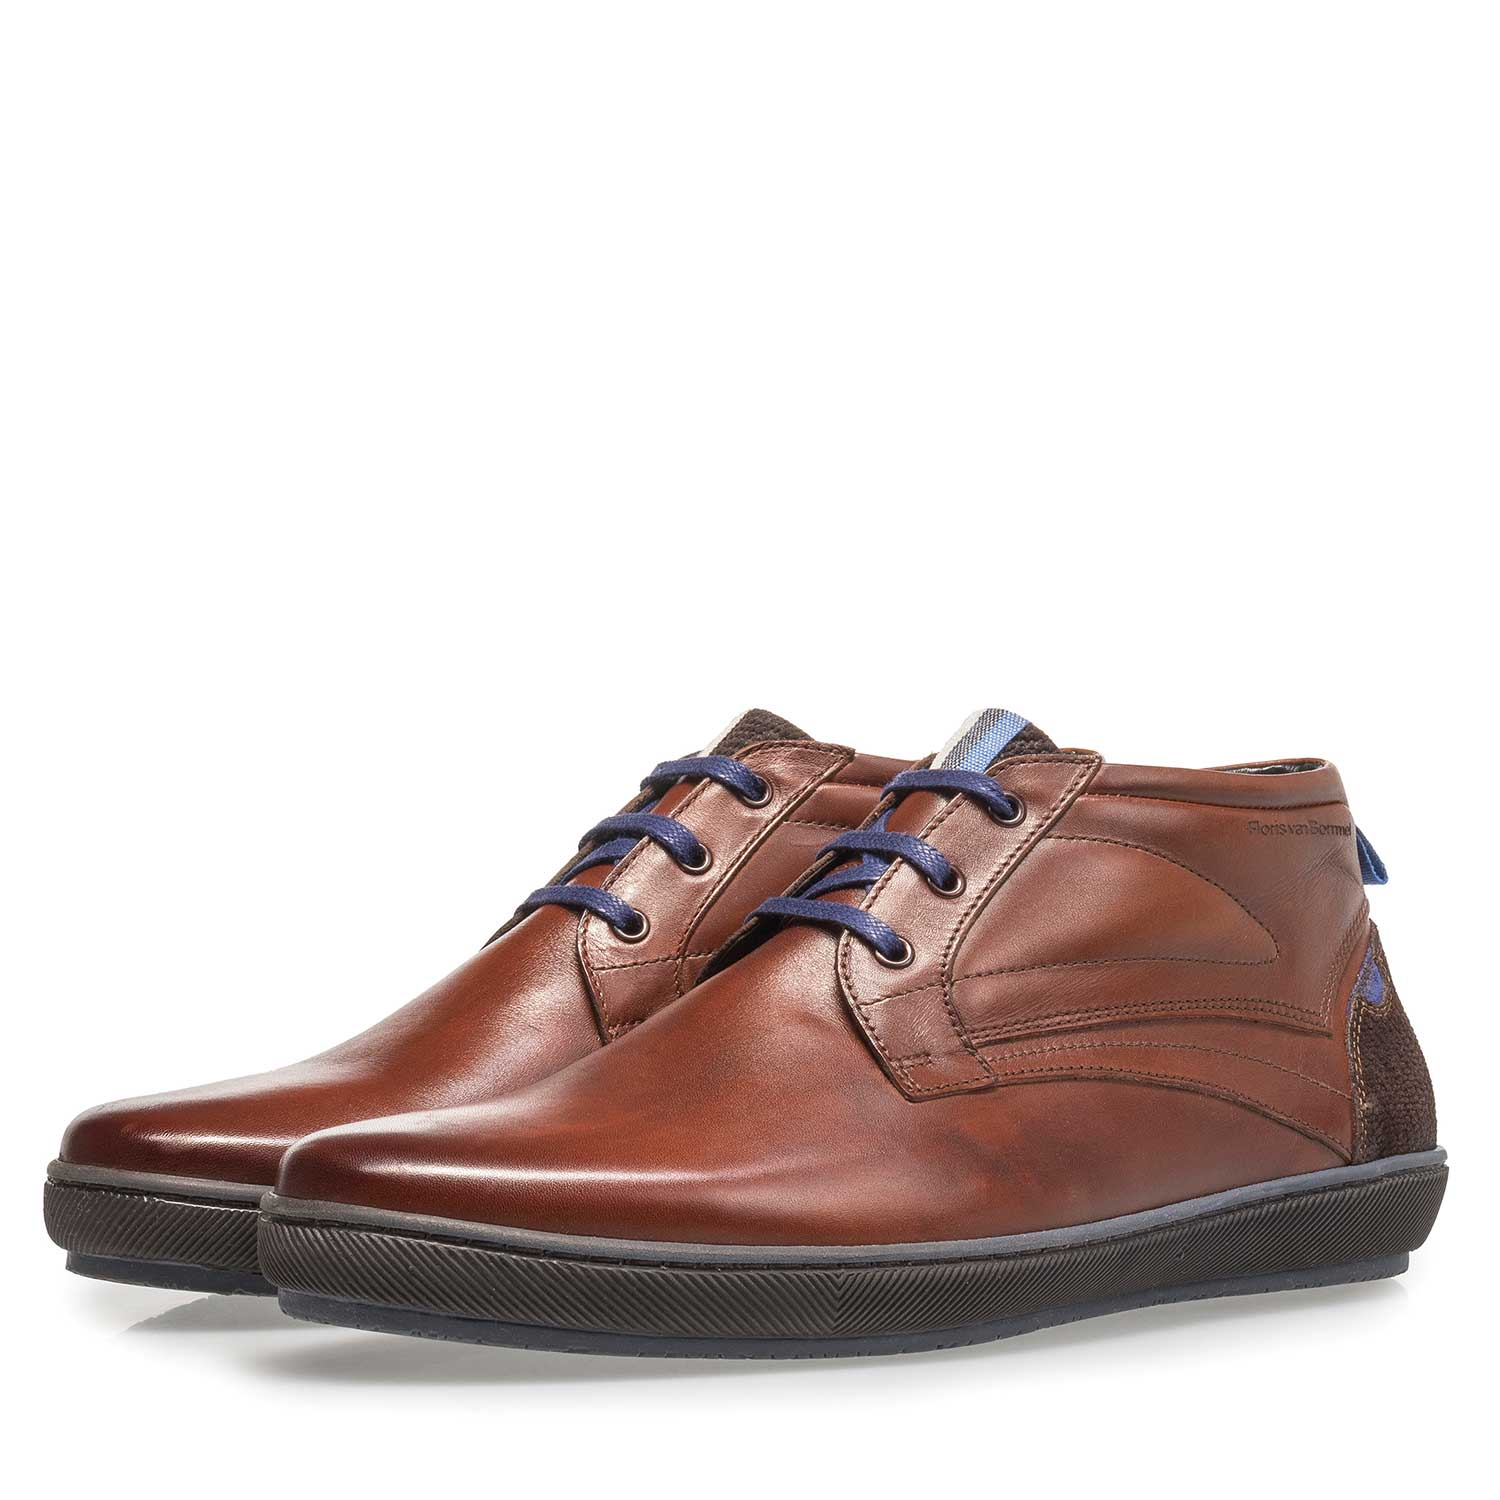 10074/15 - Dark cognac-coloured calf leather lace shoe